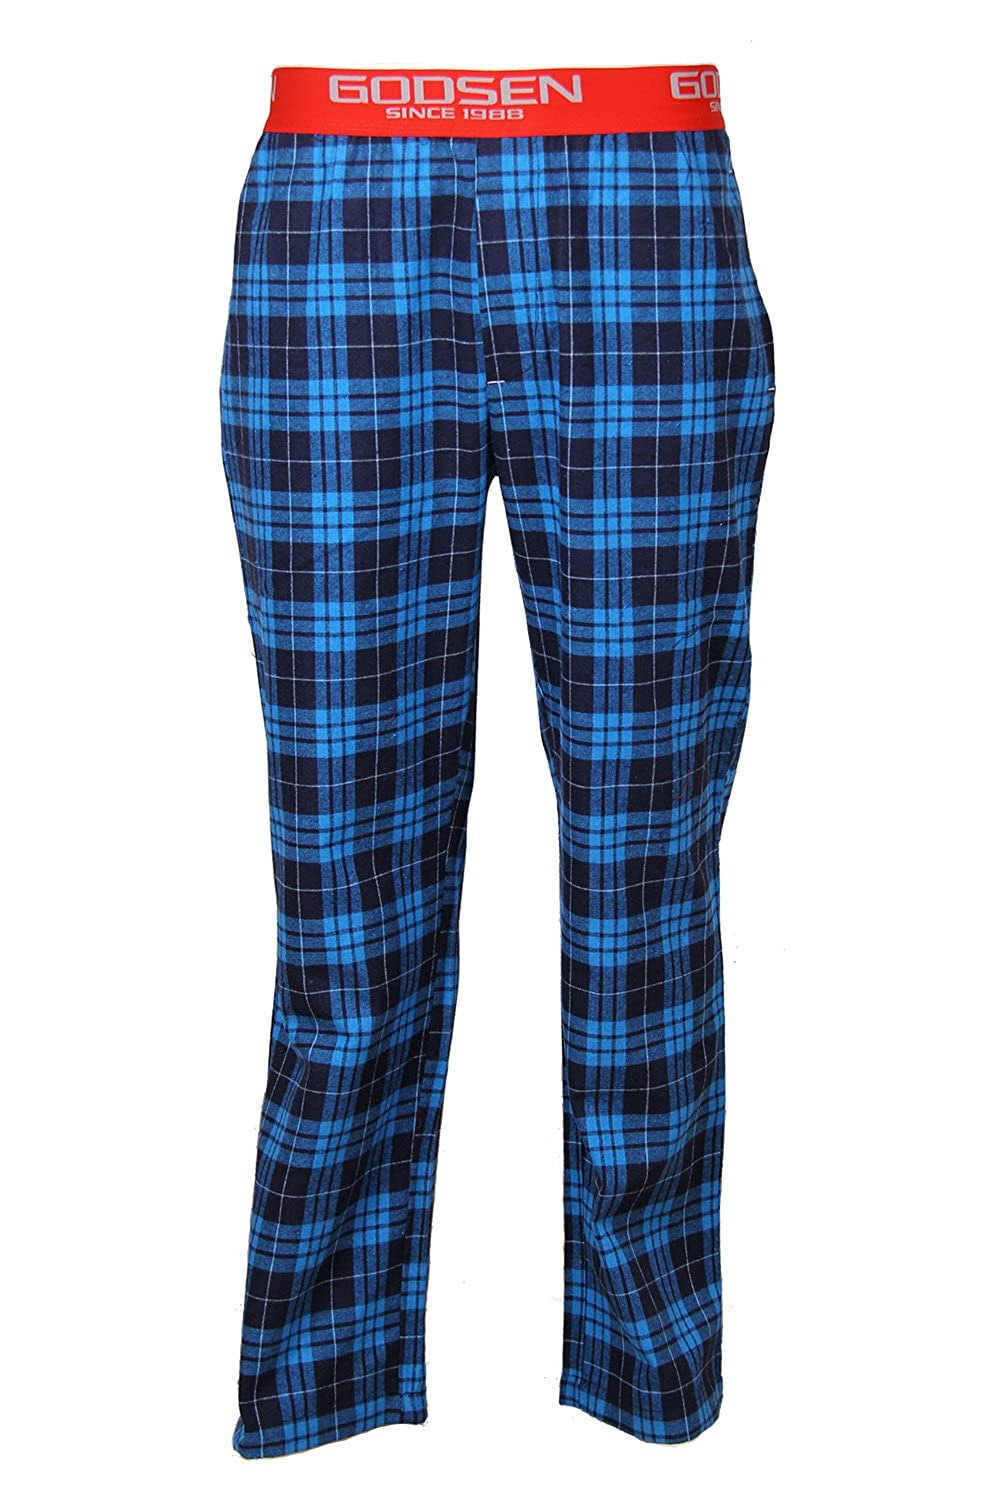 Godsen Men's 100% Cotton Flannel Pajama Pants Lounge Bottoms GC15002